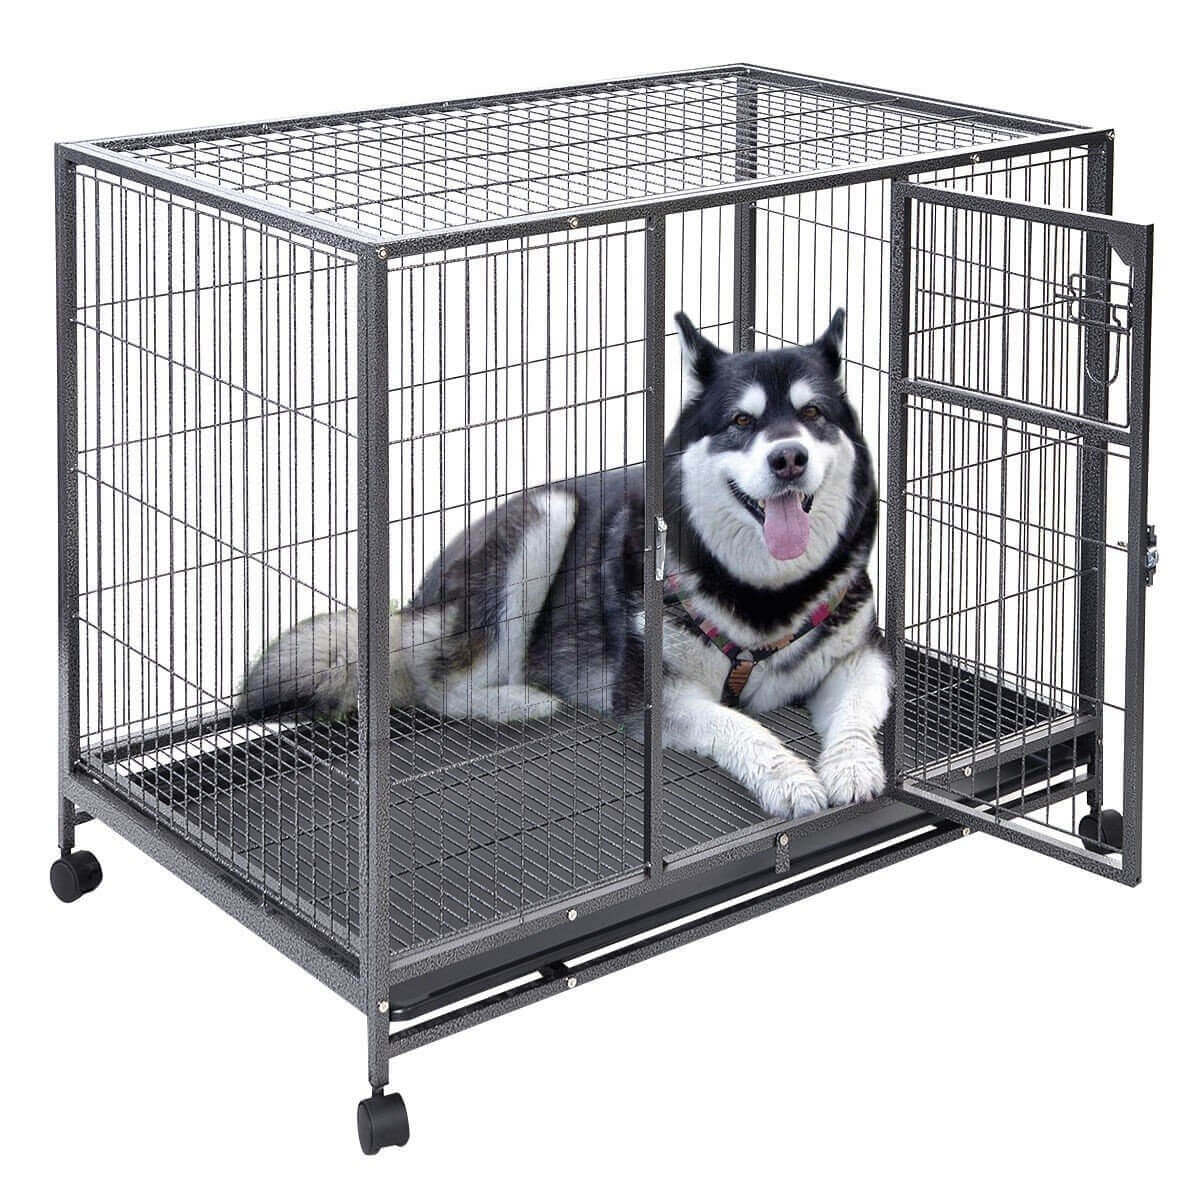 Dog Crate Safety